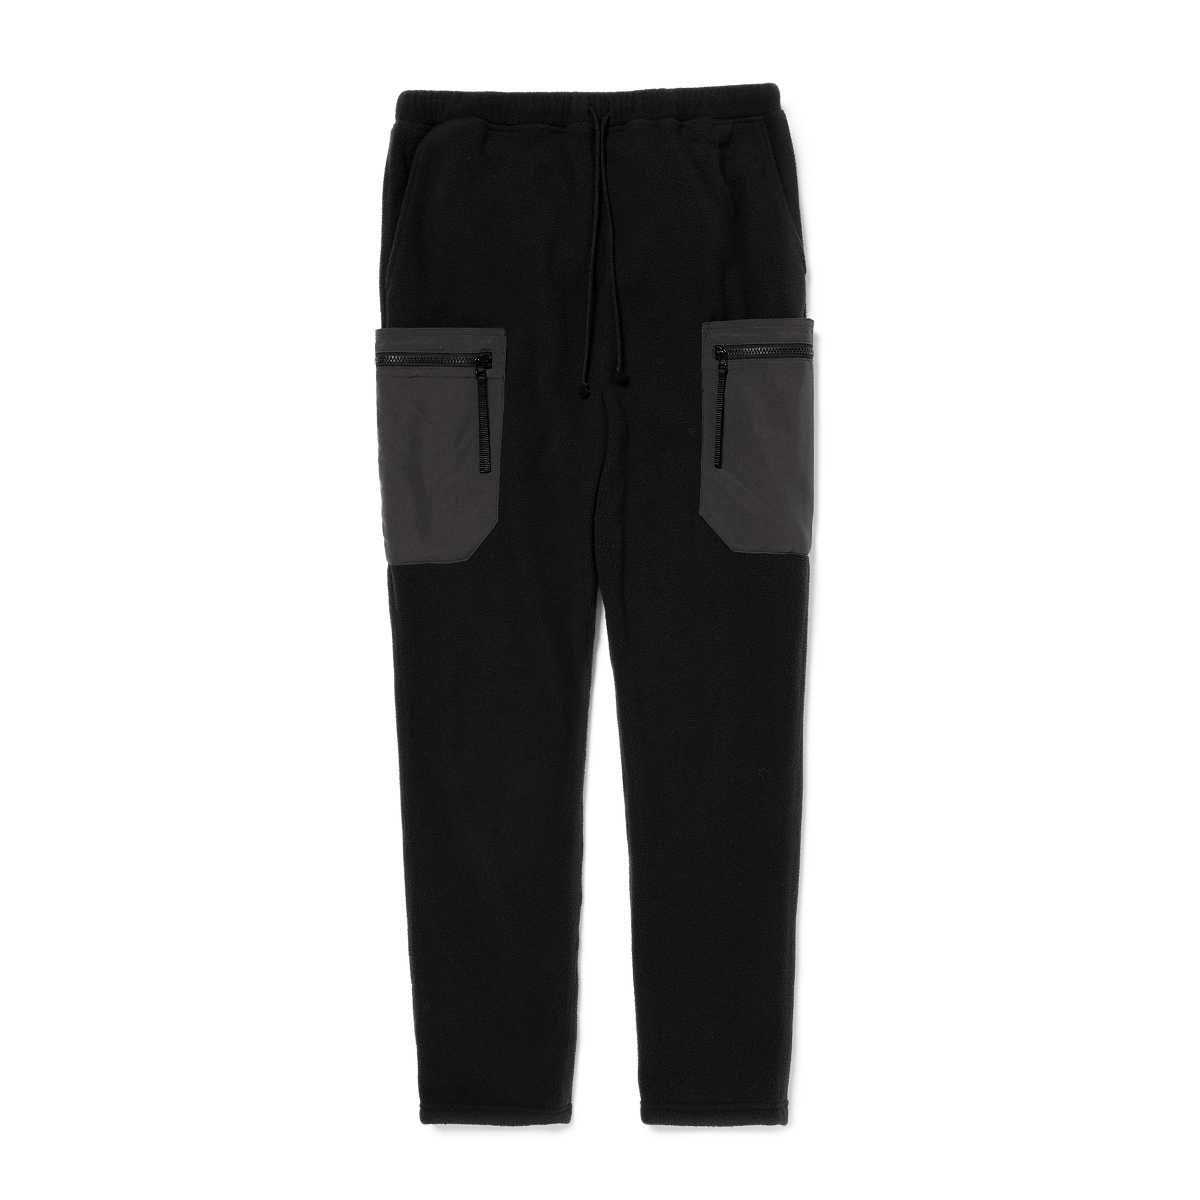 HOBO / POLARTEC® WIND PRO® Fleece Pants (Black)